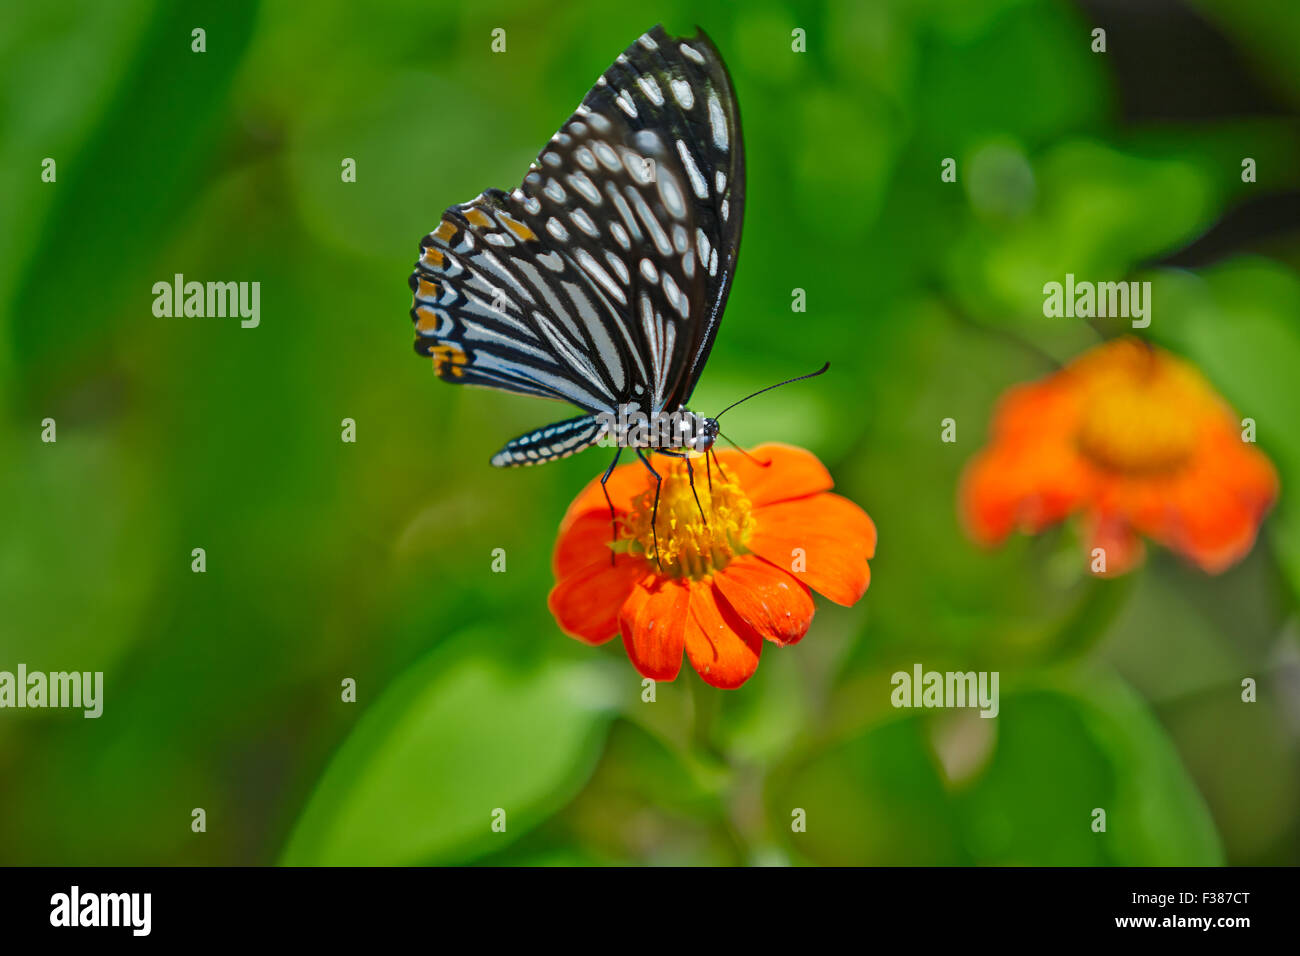 The Common Mime Butterfly, form Dissimilis on a flower. Scientific name: Papilio clytia. Banteay Srei Butterfly - Stock Image